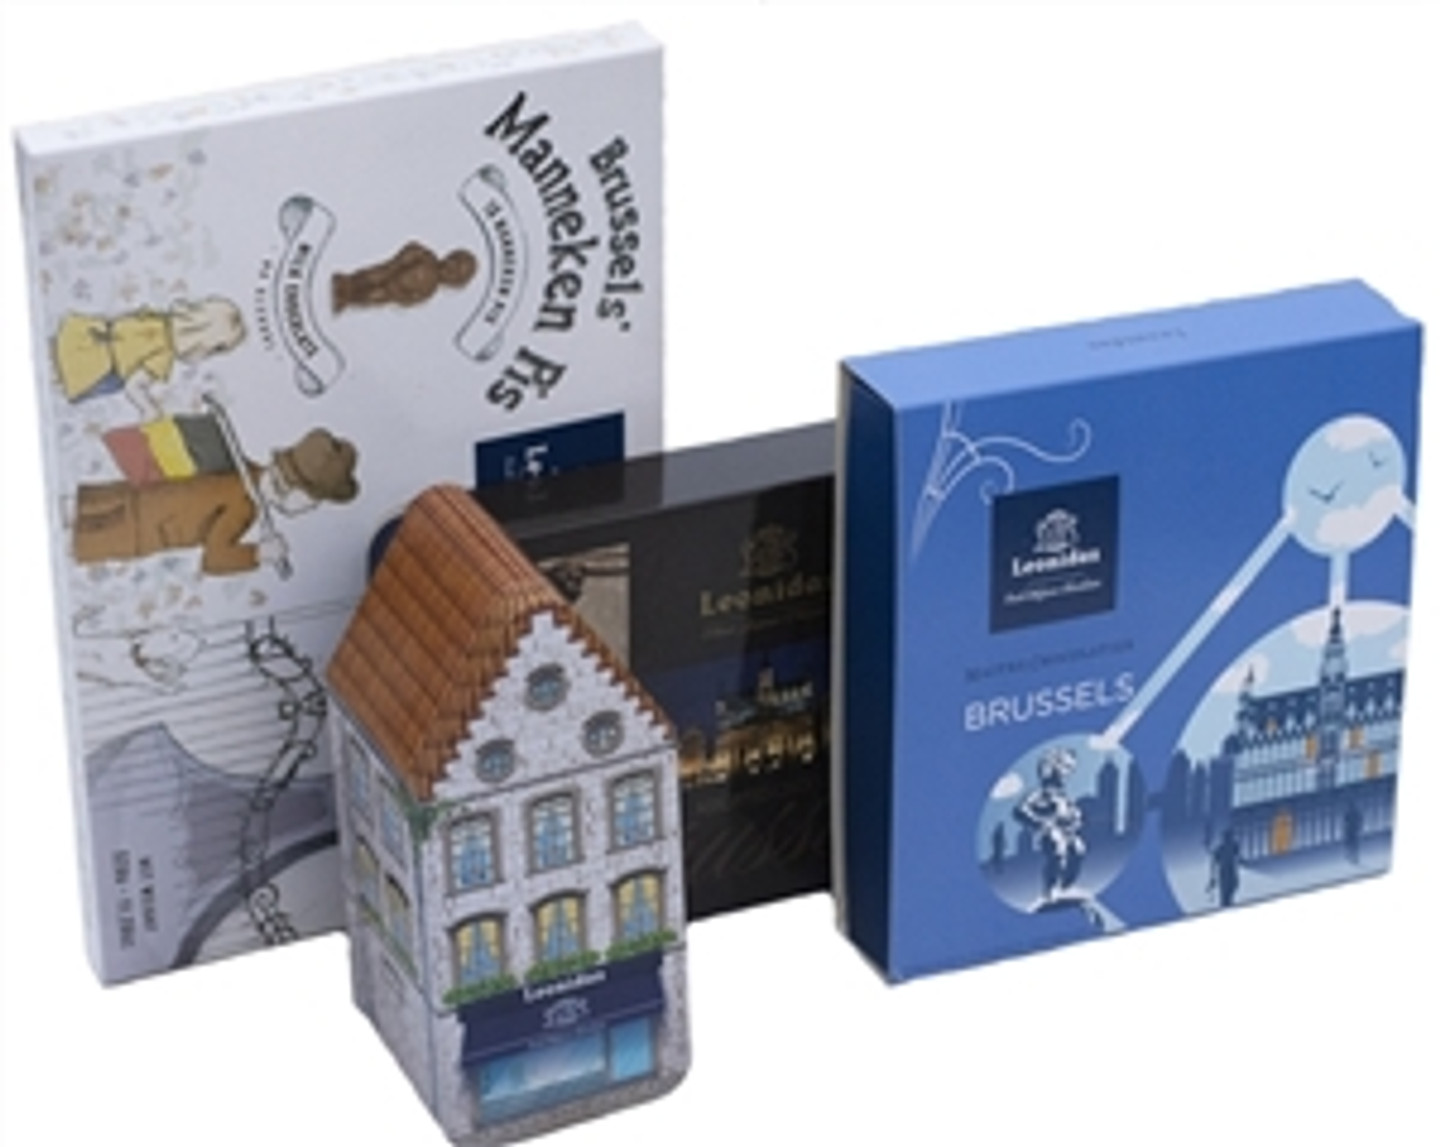 Bruxelles Gift Collection